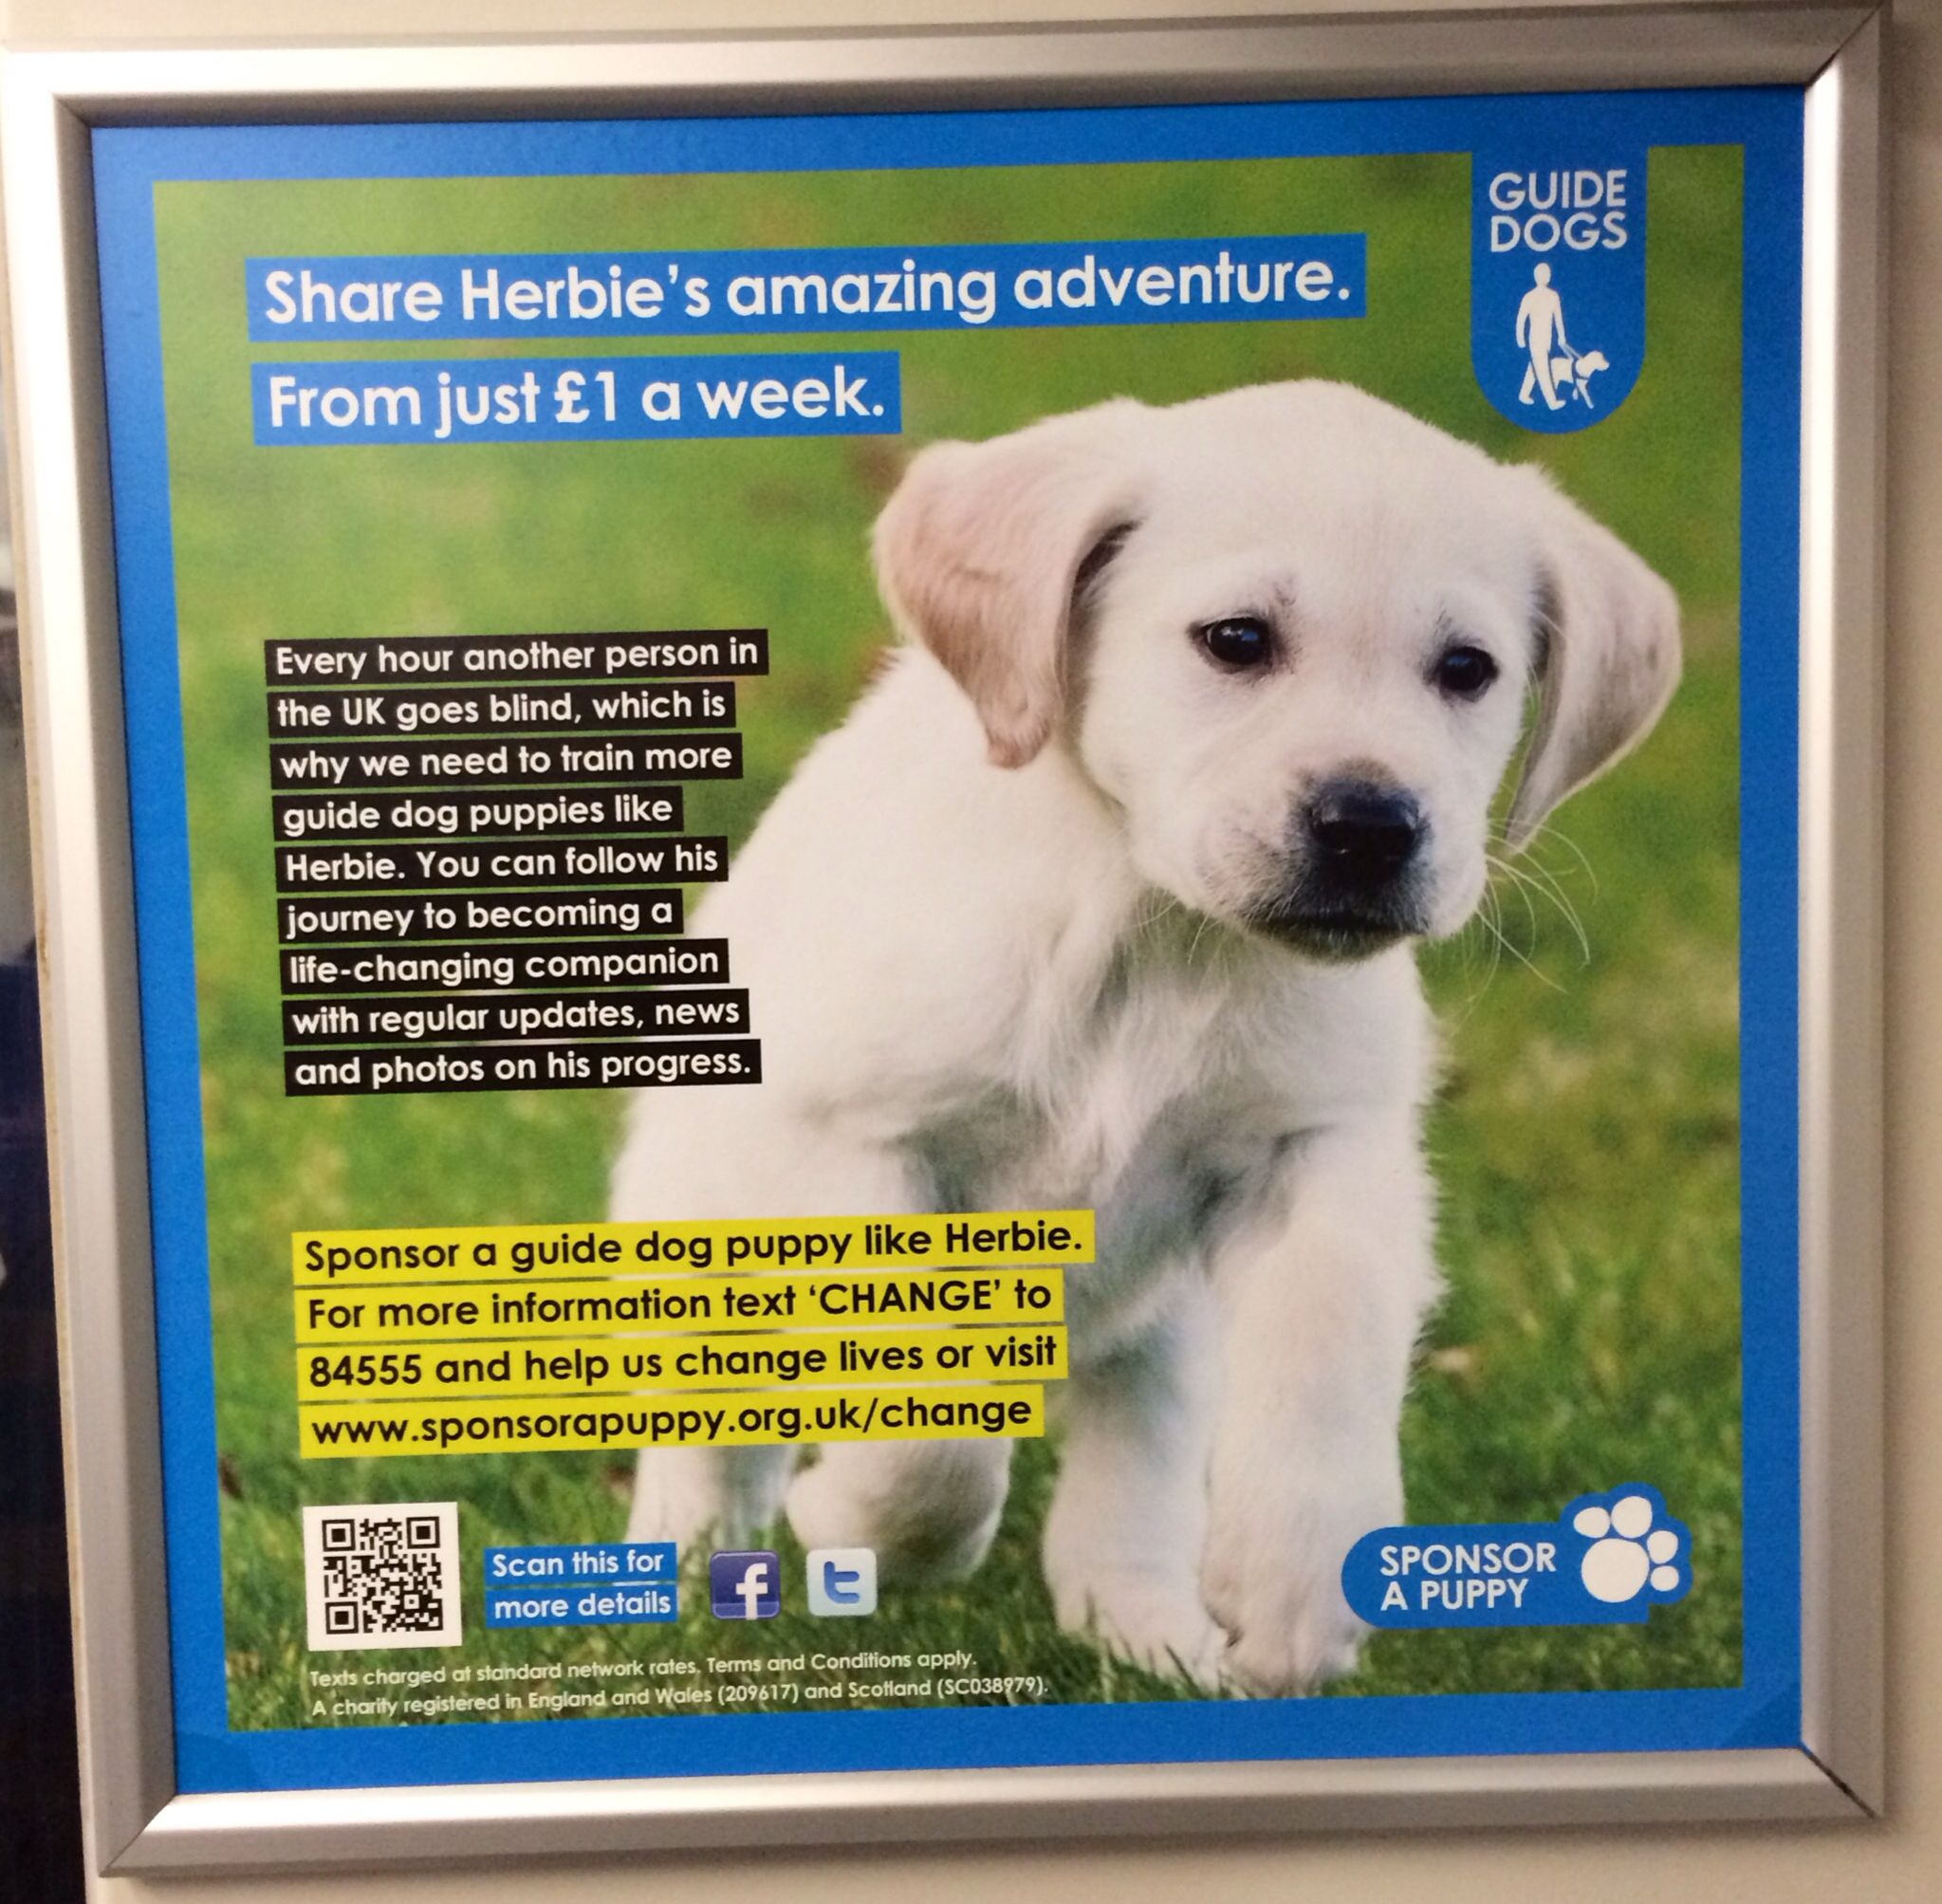 Cute Creative Calling For People To Sponsor A Puppy With